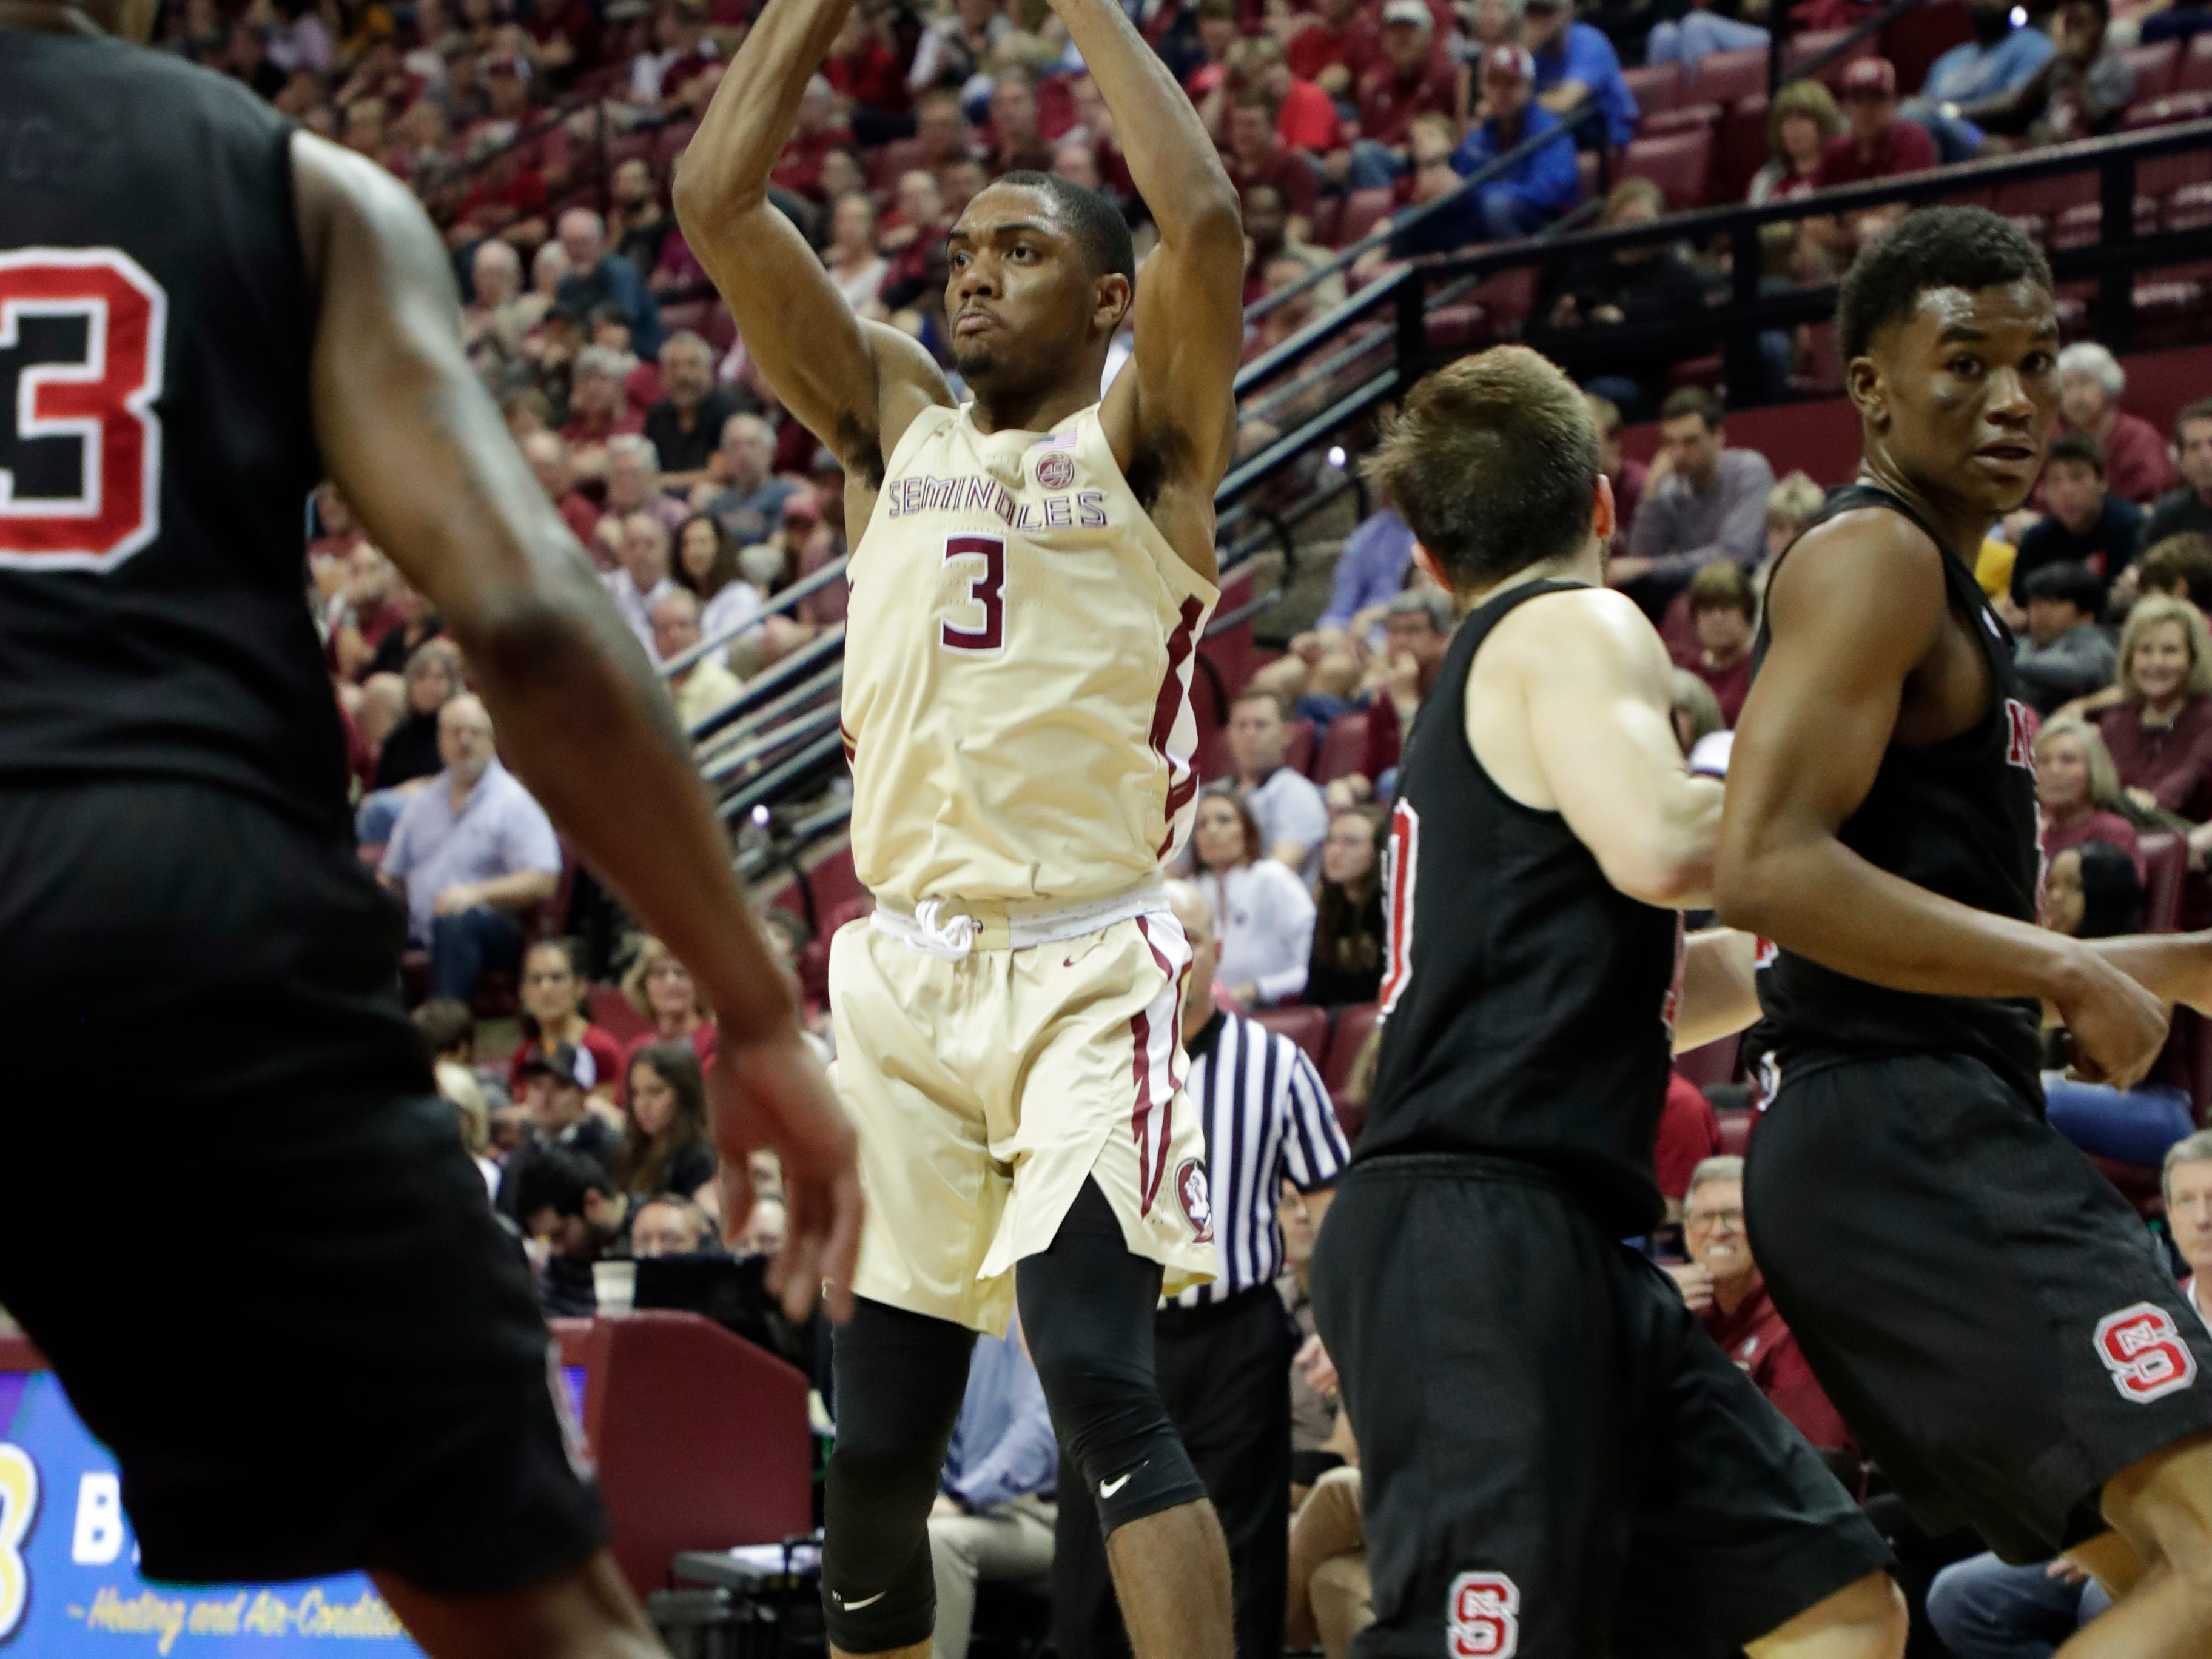 Florida State Seminoles guard Trent Forrest (3) passes to an open teammate. The Florida State Seminoles host the NC State Wolfpack at the Tucker Civic Center Saturday, March 2, 2019.